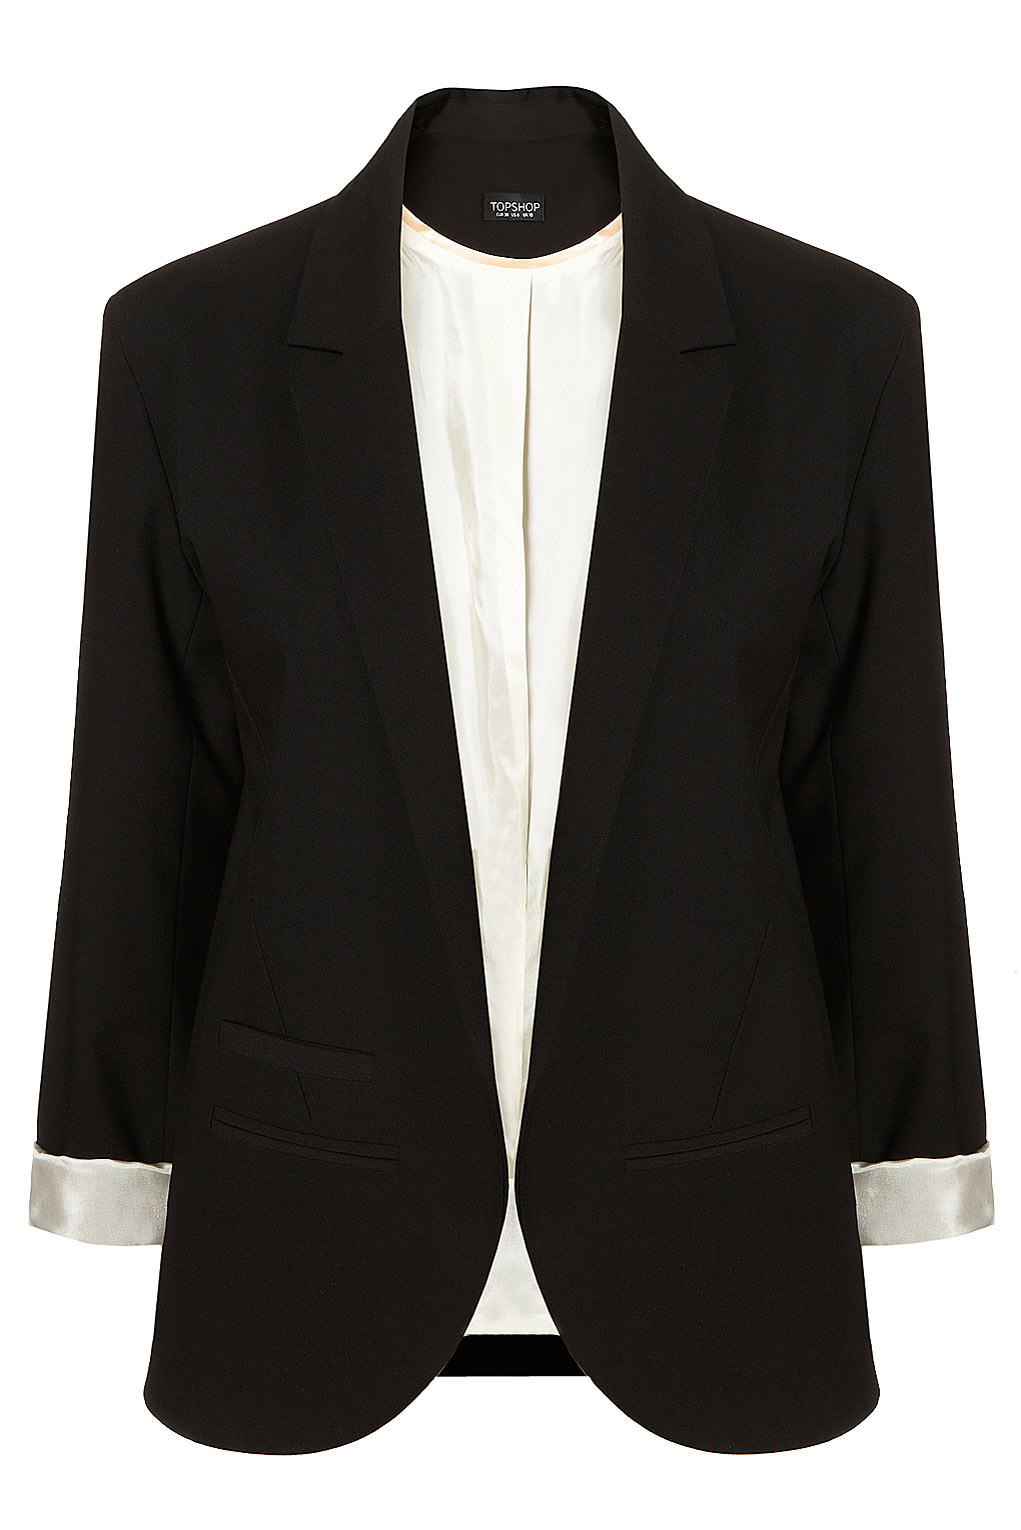 Available in Black Solid Blazer Zipper Front 95% Polyester 5% Spandex.